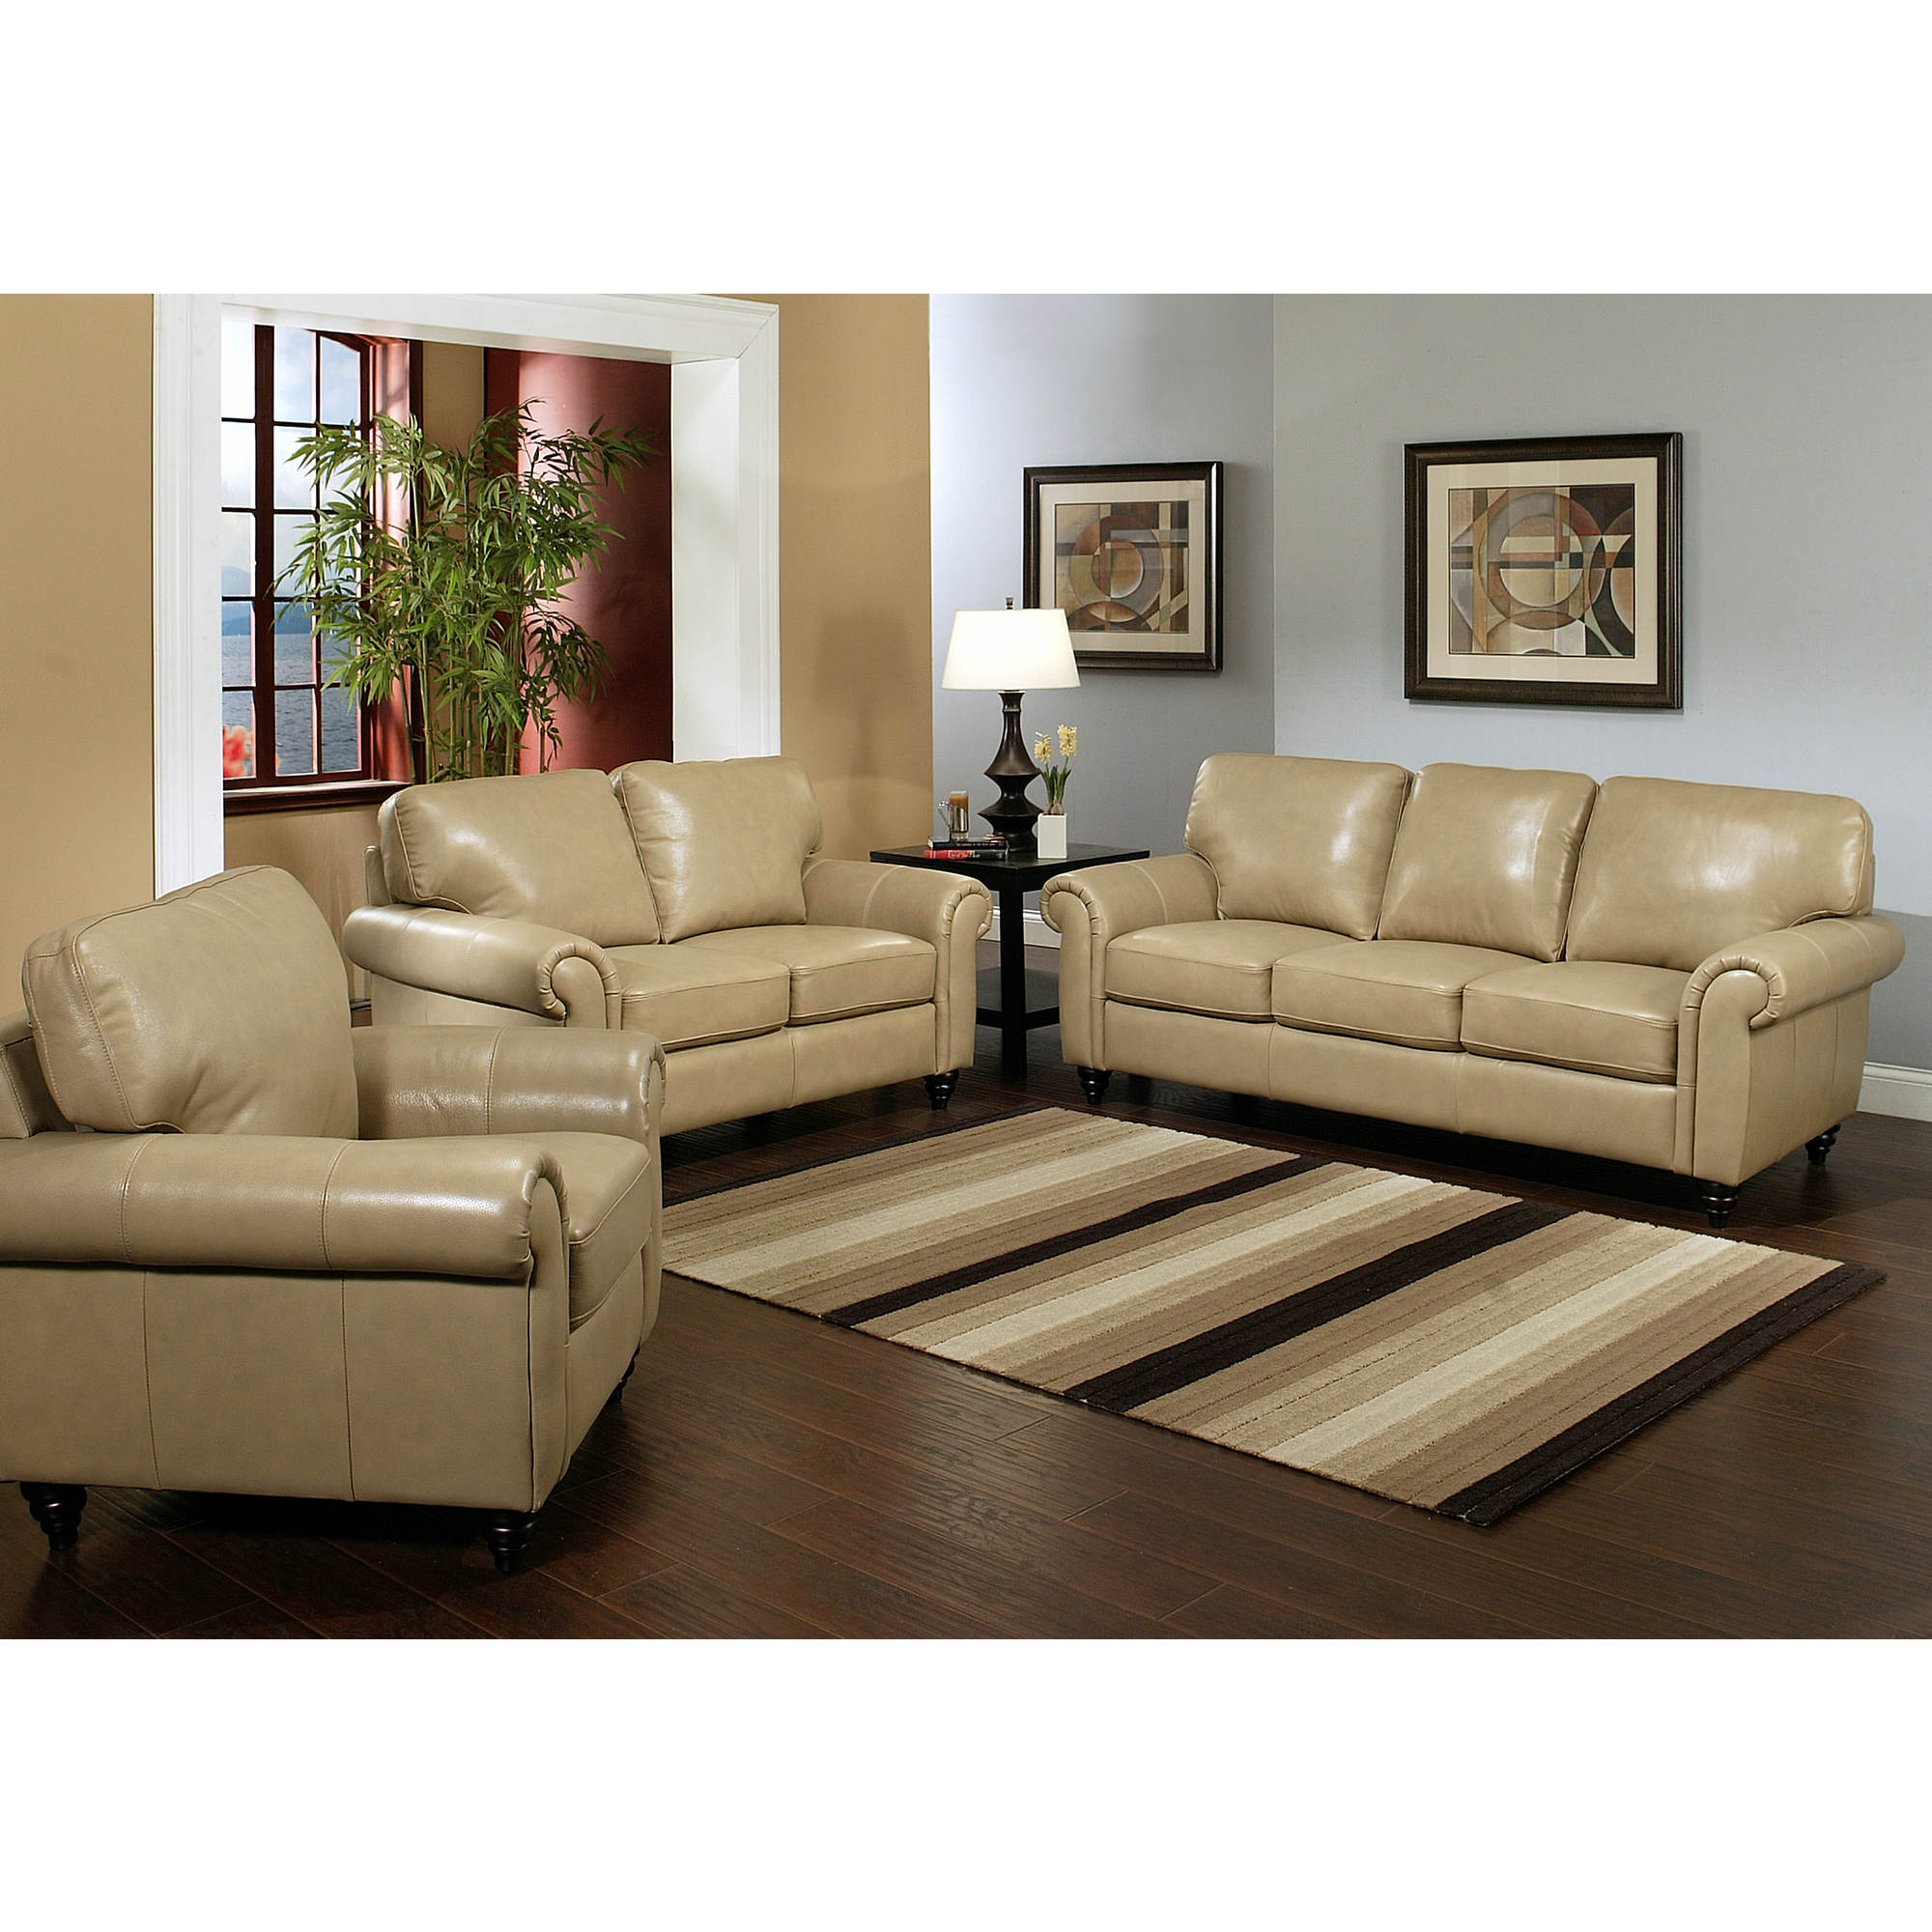 Abbyson living chelsea 3 pc top grain leather living room for Cheap 3 piece living room sets